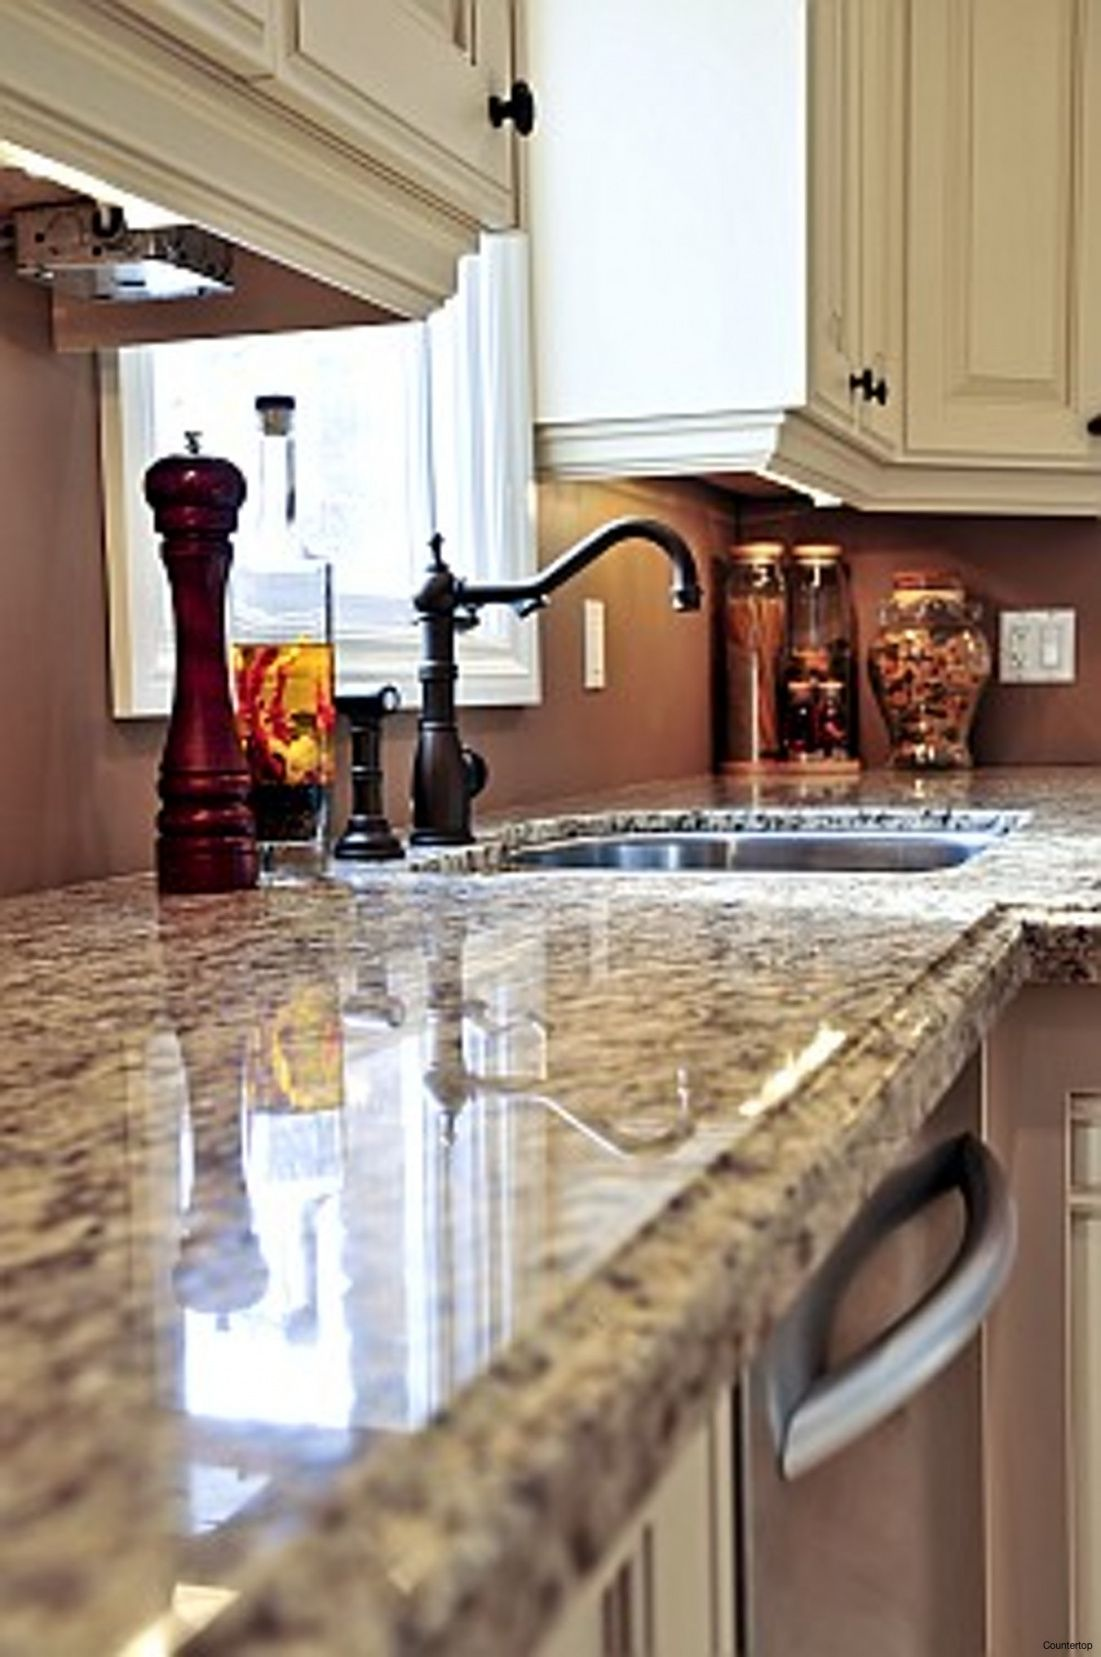 How To Remove Hard Water Stains From Granite Countertops Pin By Erlangfahresi On Granite Countertops Colors